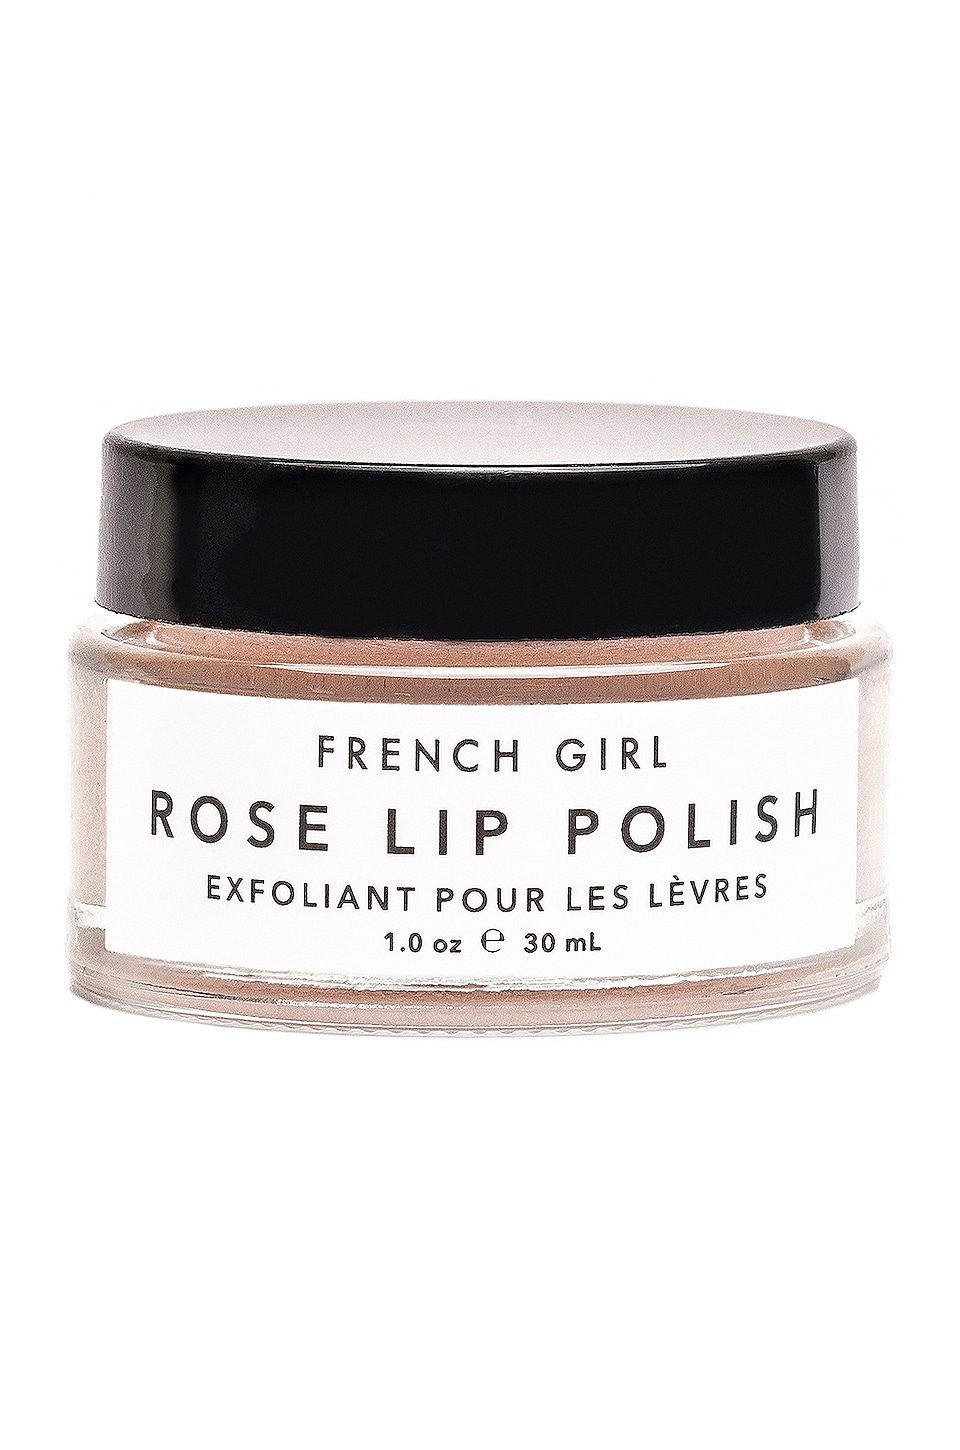 French Girl Organics Rose Lip Polish in All